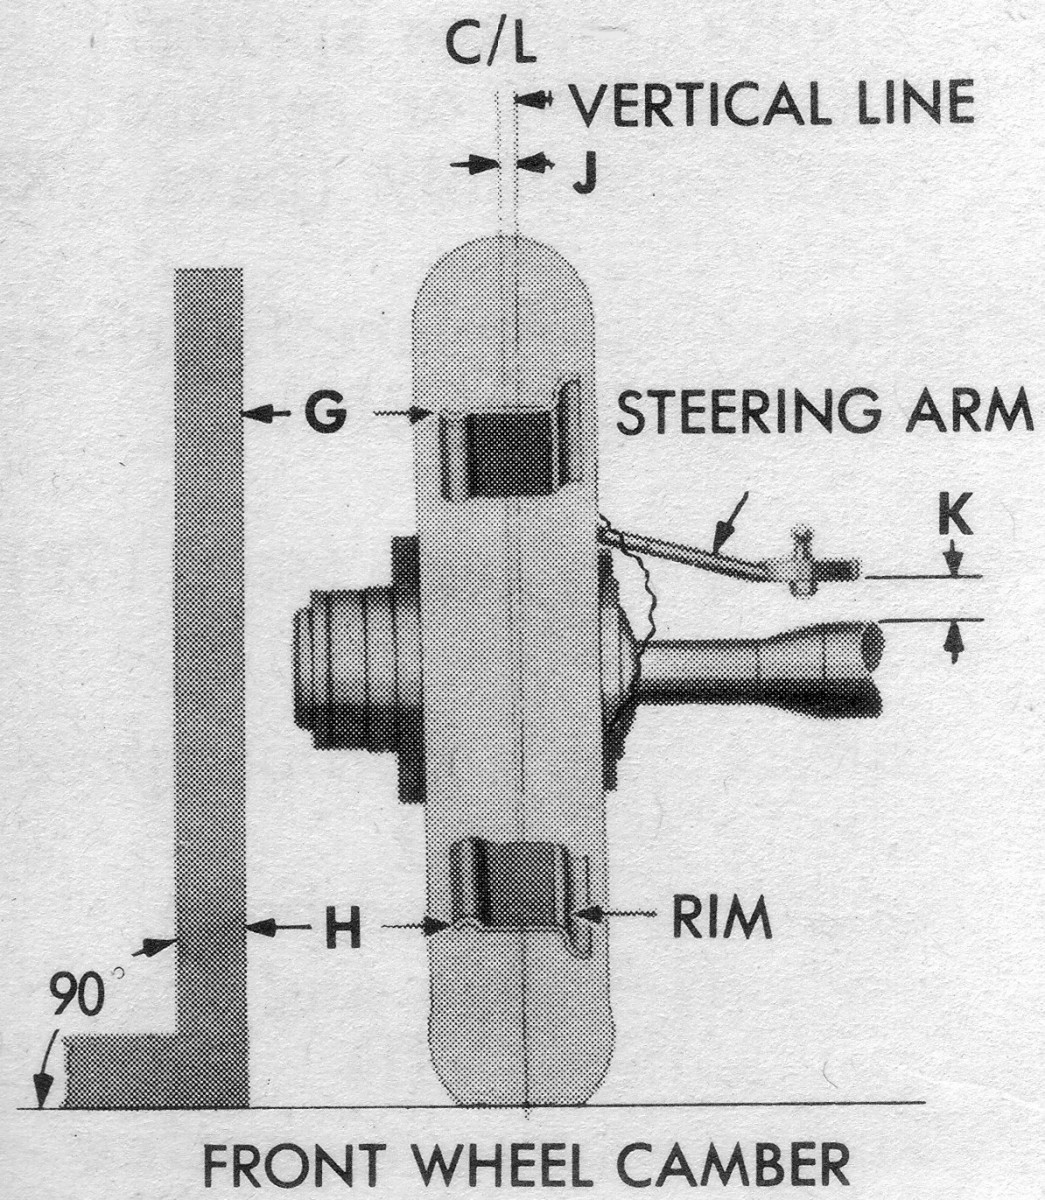 The second main factor in front end alignment is CAMBER. Camber is the angle, measured in degrees, that a vehicle's steering knuckle pivots are tilted outward away from the vehicle's center line. Like caster, camber is usually built in at the factory and meant to be permanent for the life of the vehicle.